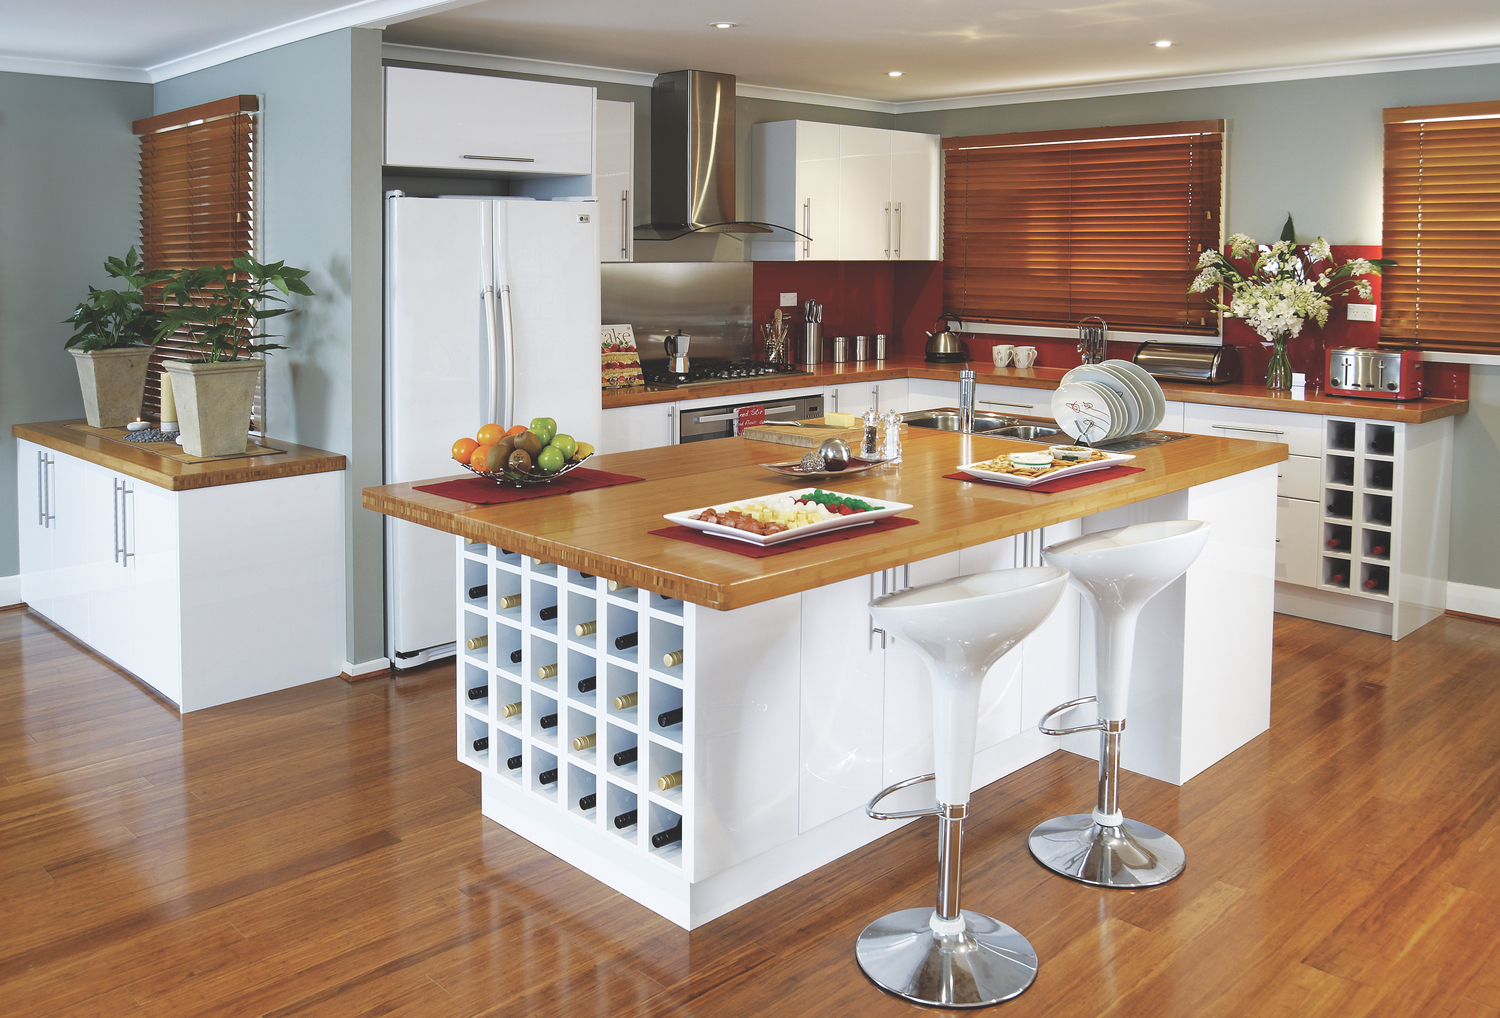 kitchen gallery the complete package kaboodle kitchen download